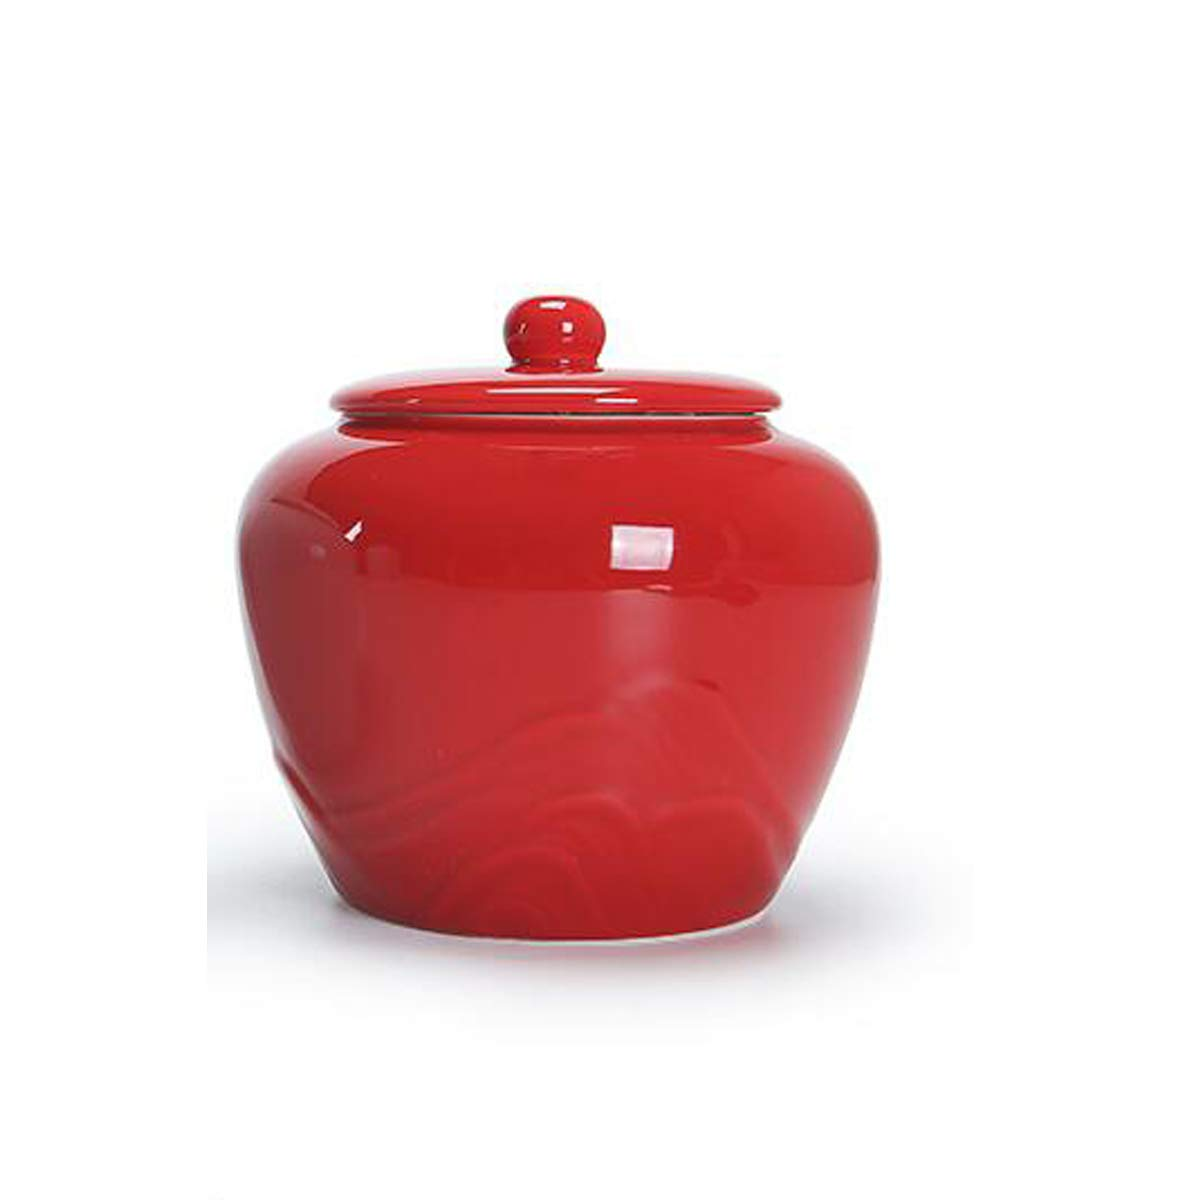 Red 8haowenju Memorials,Pet Urn,Cremation Urns for Pets,Functional Urn,Ceramic Sealed,Moisture Proof,Keepsake Box for Dogs and Cats The Latest Style, MultiFunction (color   Red)